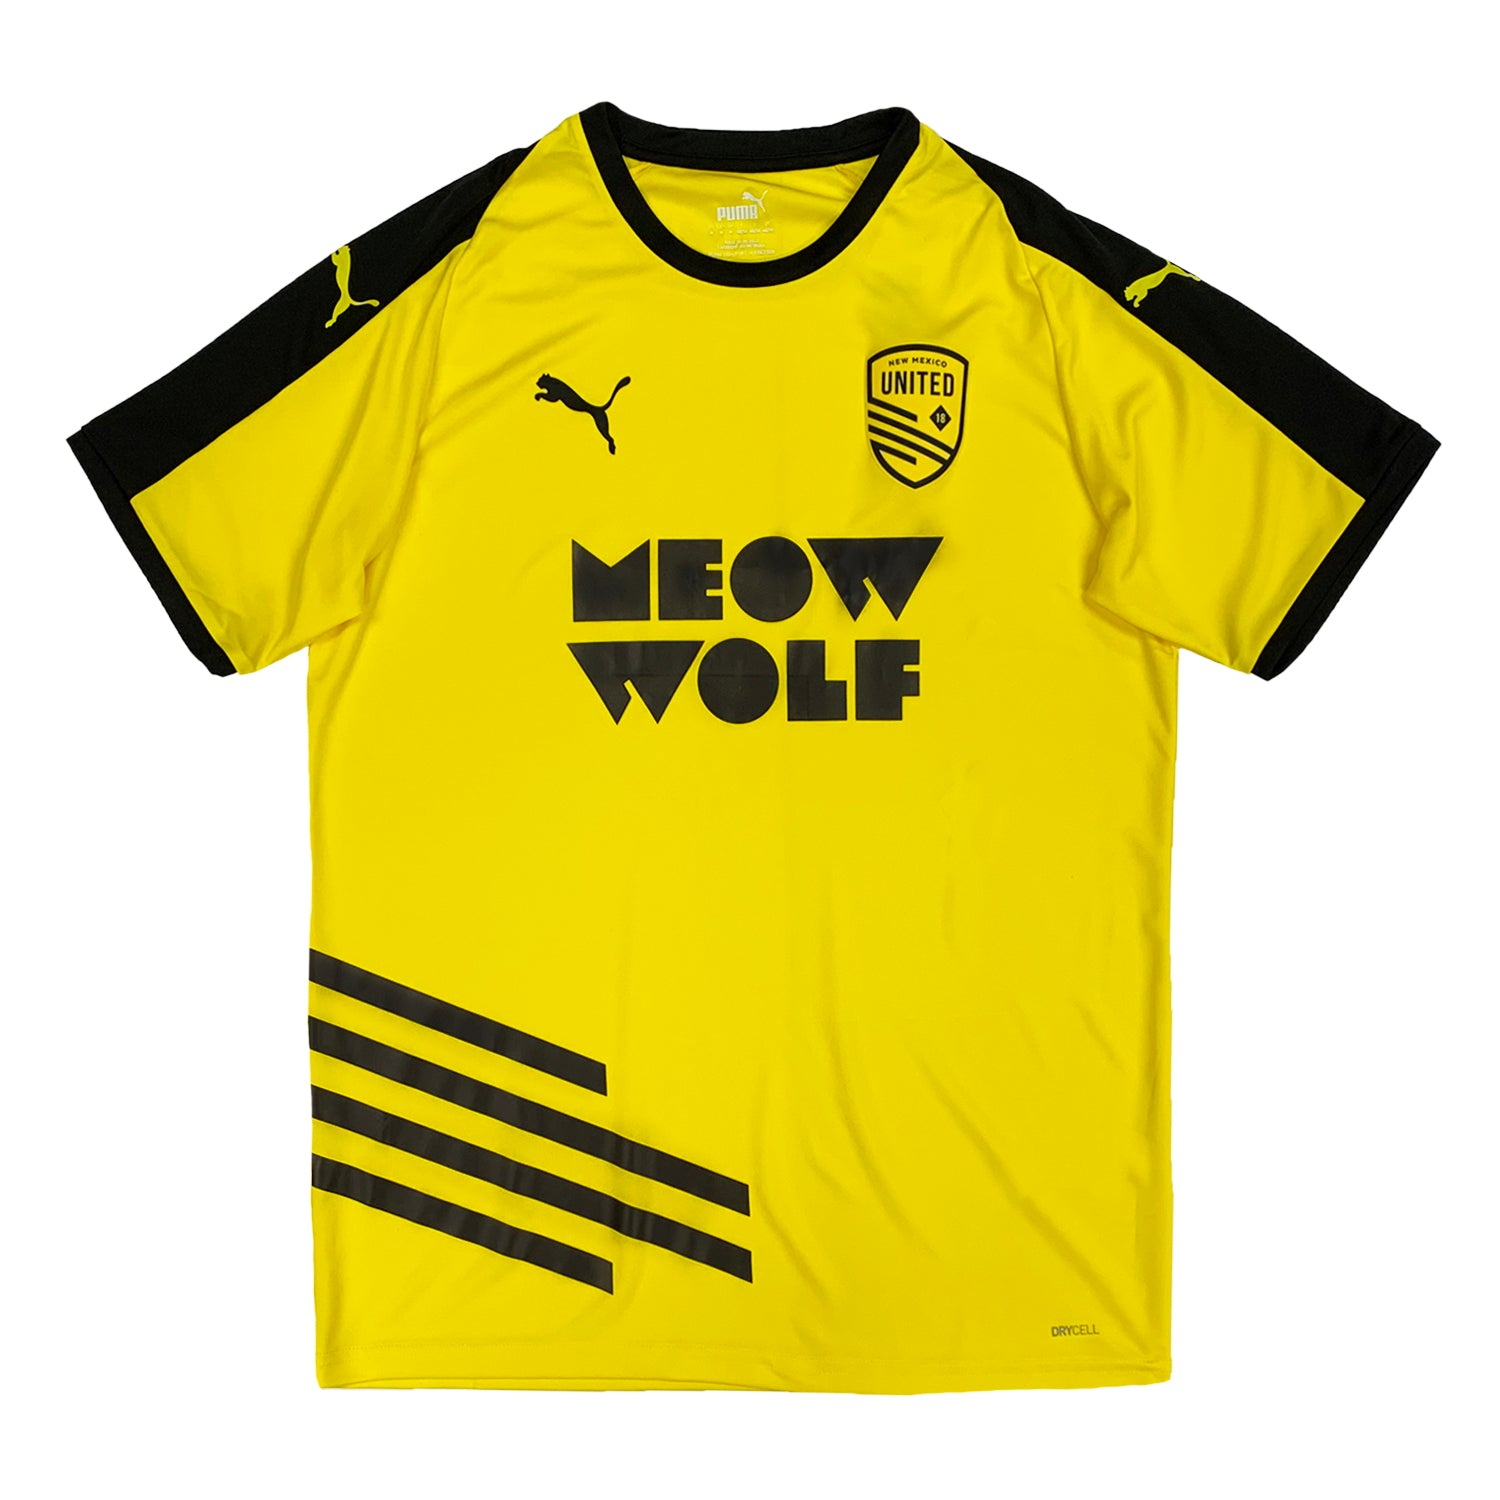 New Mexico United Puma 2020 Meow Wolf Unisex Away Jersey